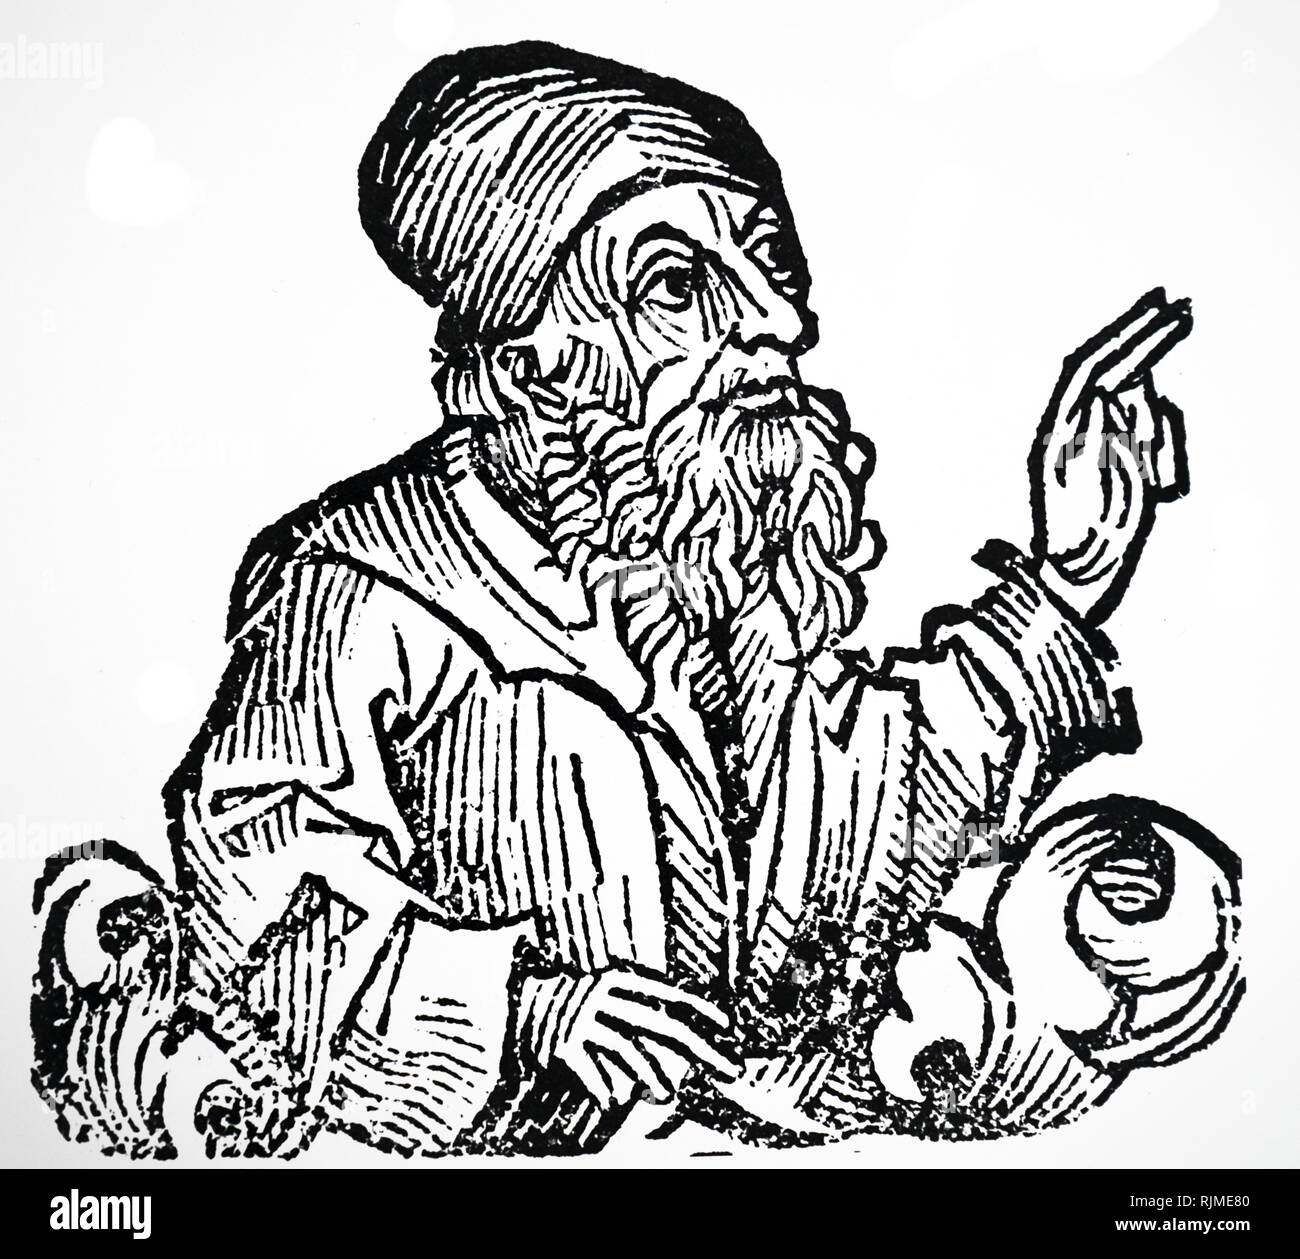 Illustration showing Jan Huss From Hartmann Schedel 'Liber 0hronicarum mundi (Nuremberg Chronicle)', Nuremberg, 1493. Jan Hus ( c. 1369 - 6 July 1415), Czech theologian, philosopher, master, dean, and rector Stock Photo